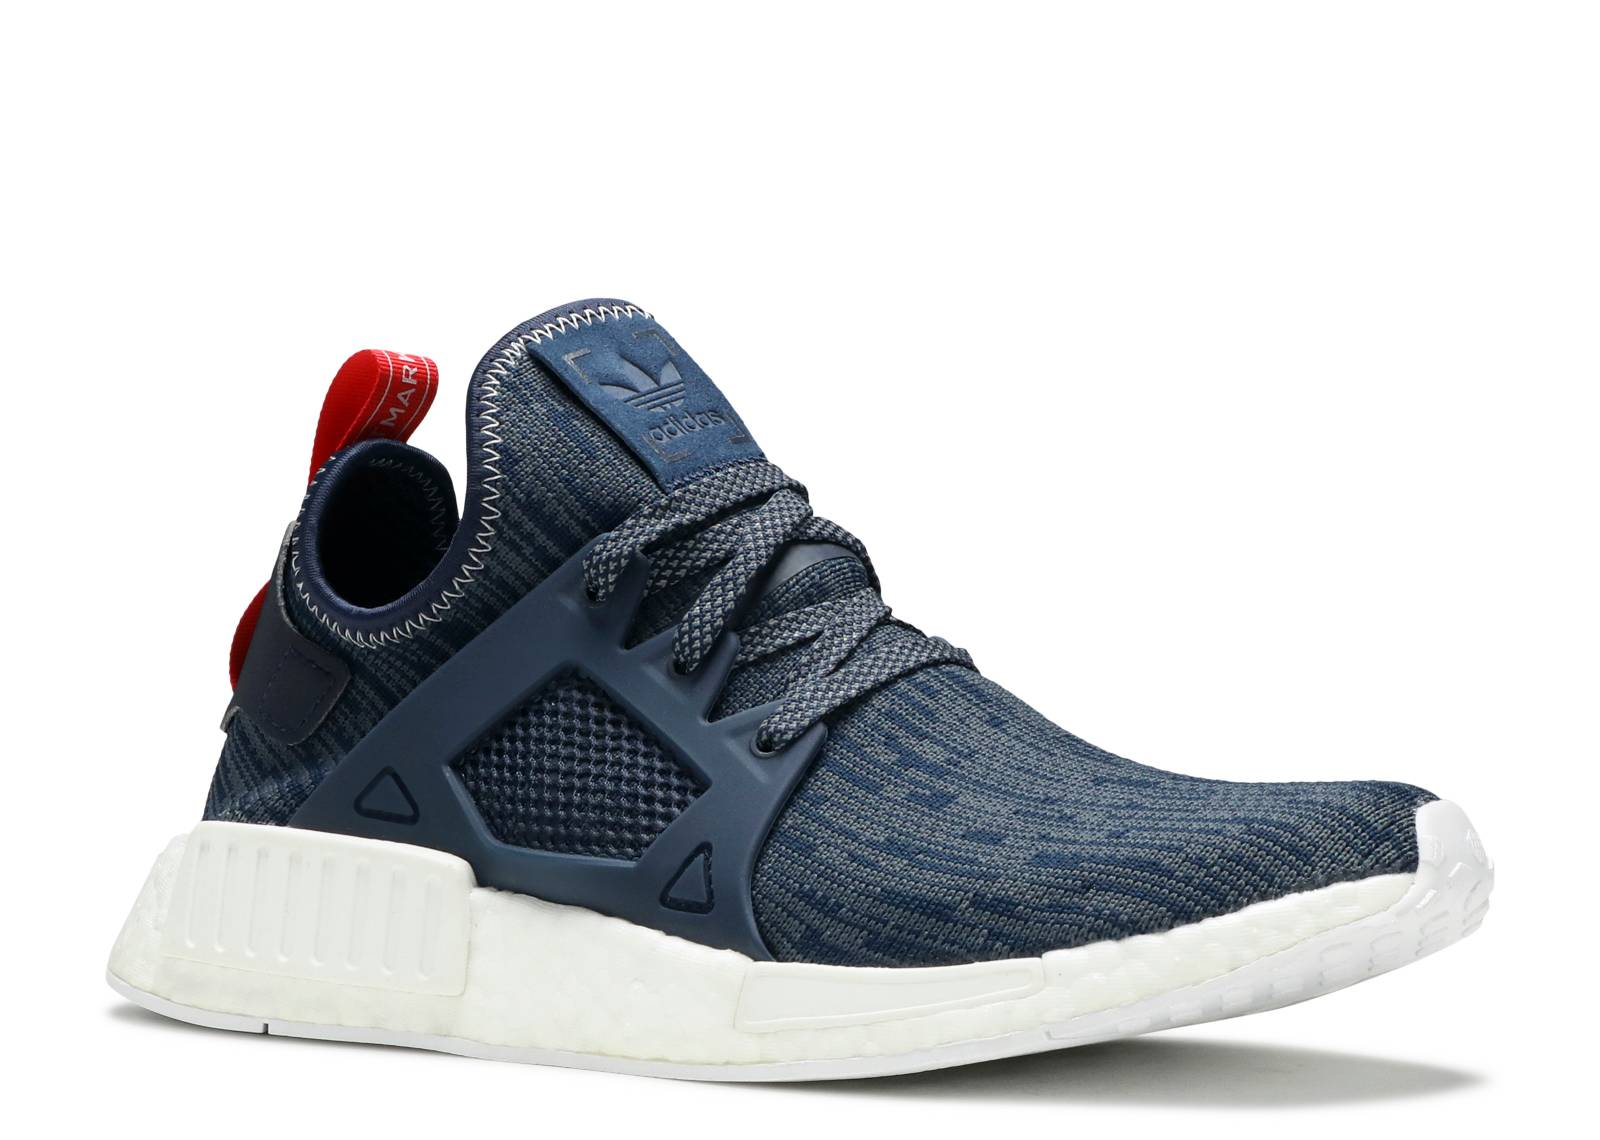 NMD XR1 BY1910